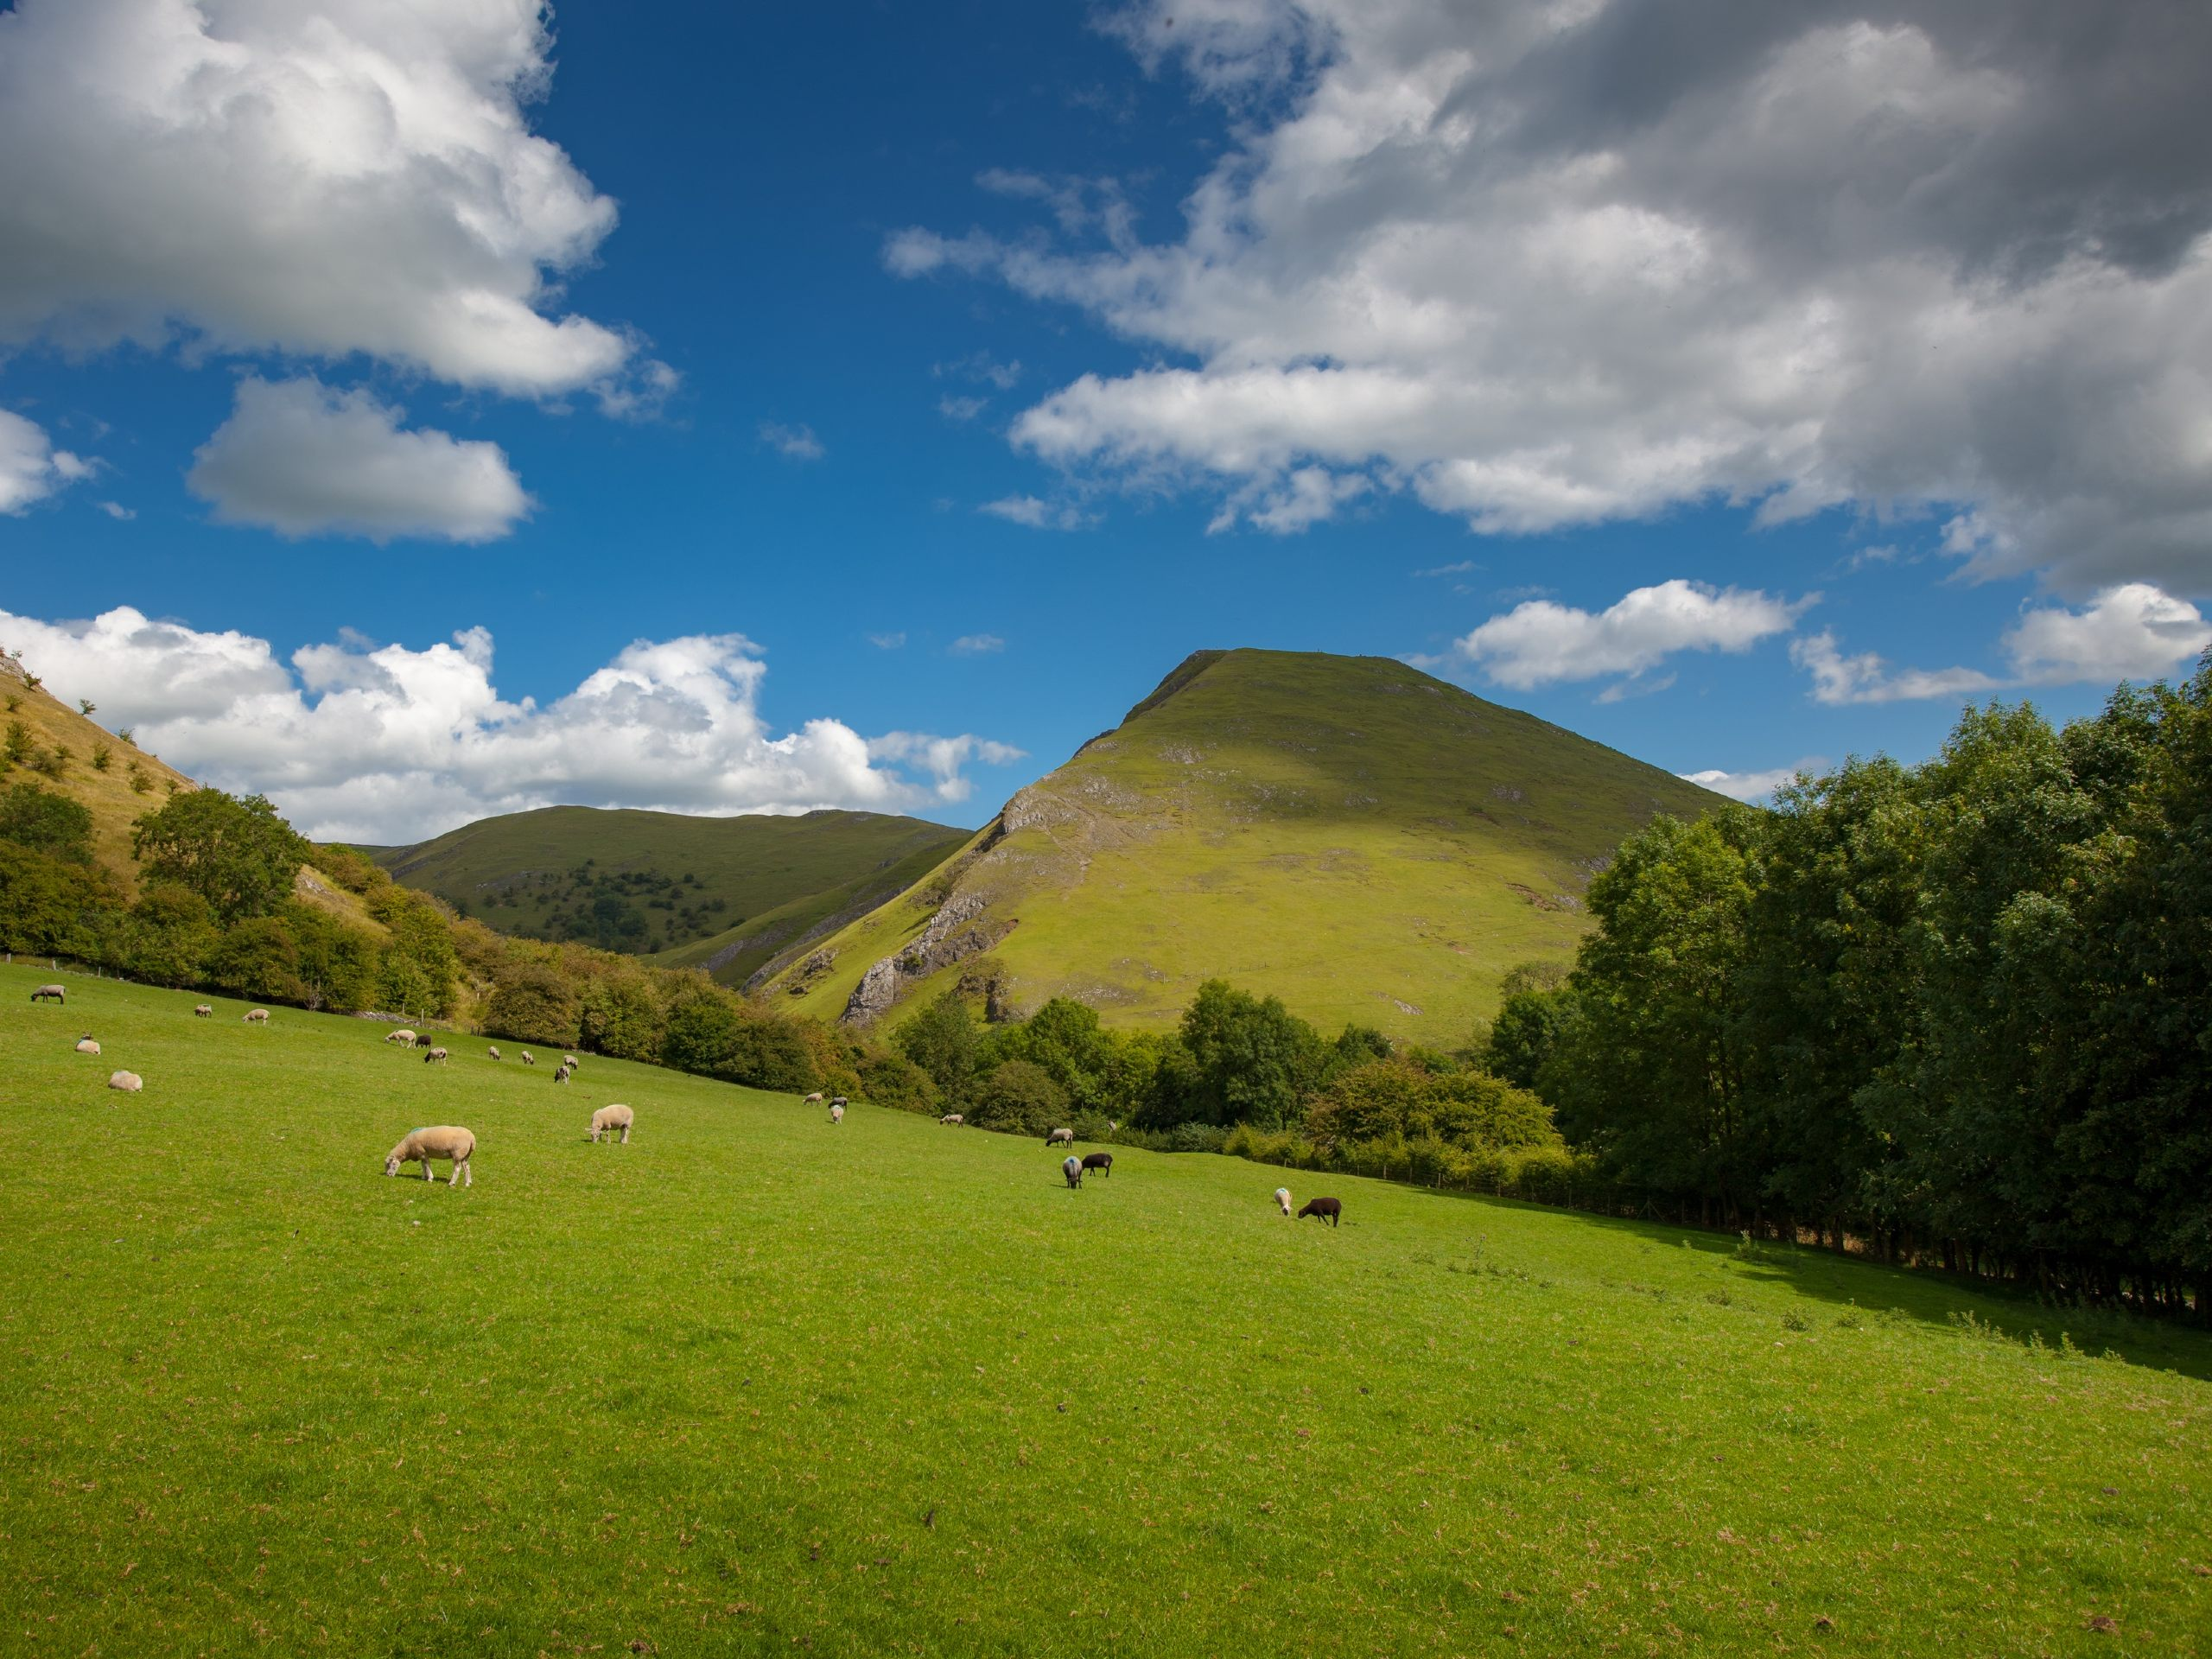 Sheep grazing in front of Thorpe Cloud